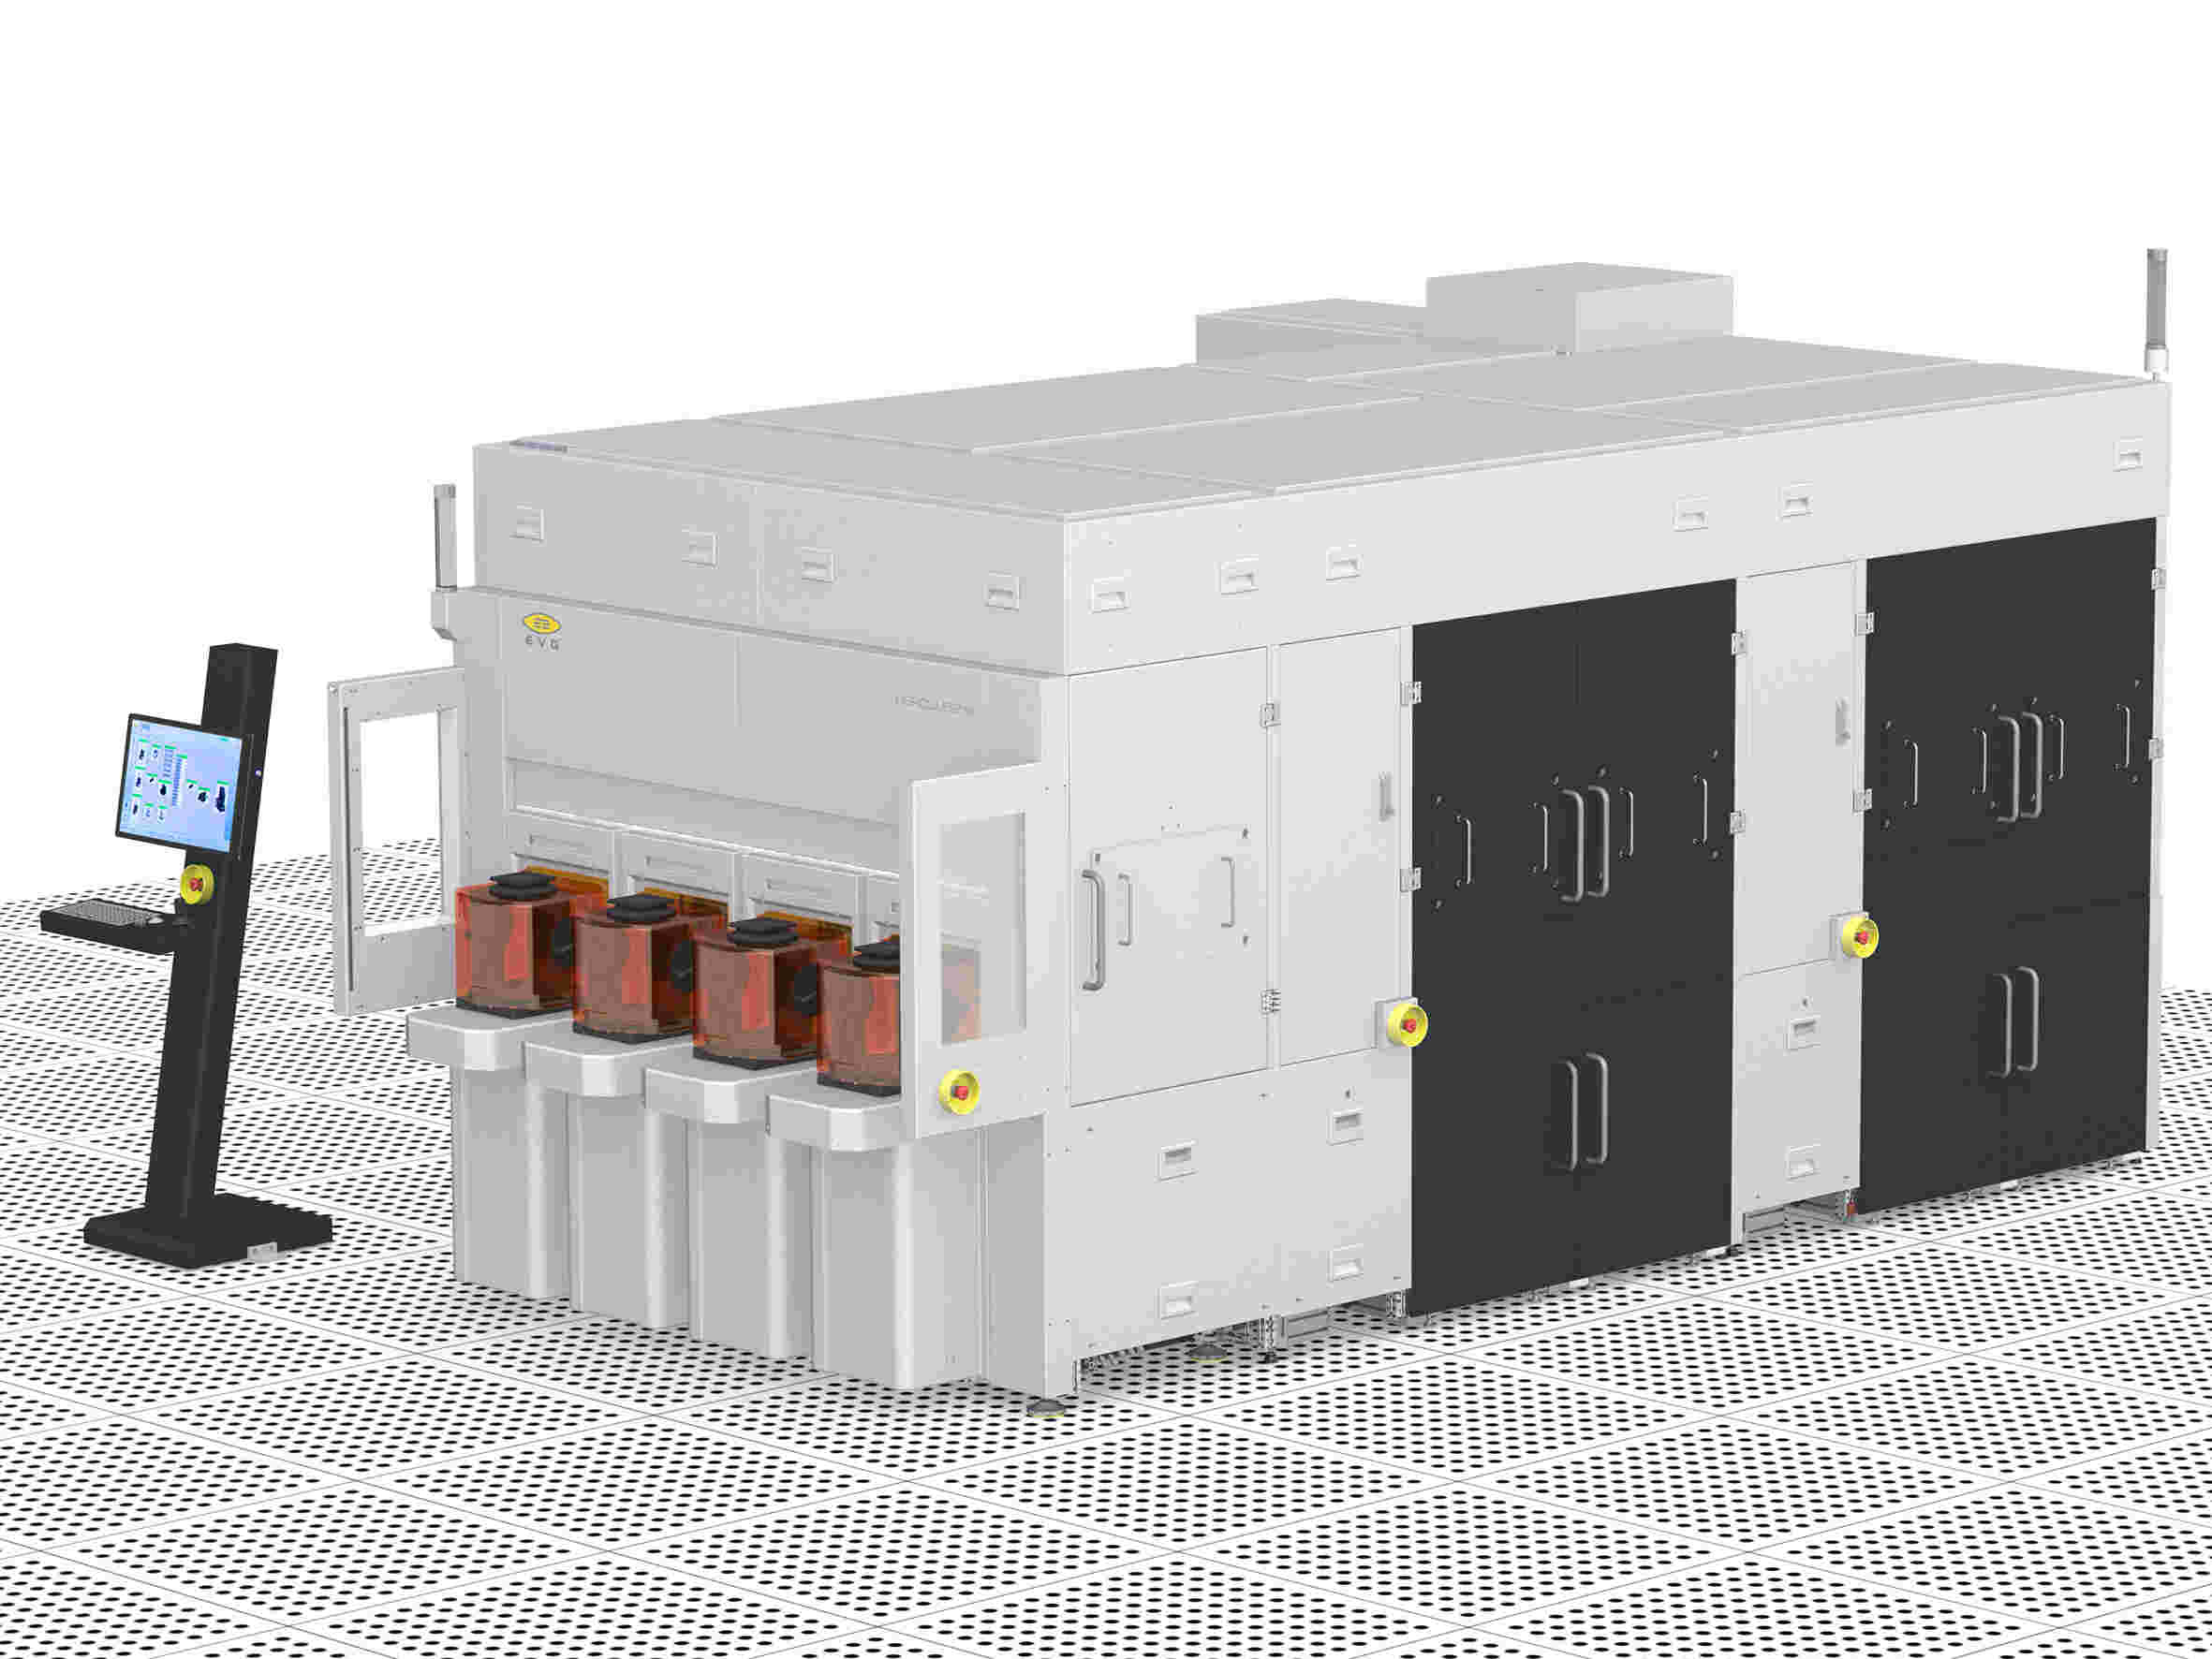 HERCULES® NIL Fully Modular and Integrated SmartNIL® UV-NIL System up to 300 mm